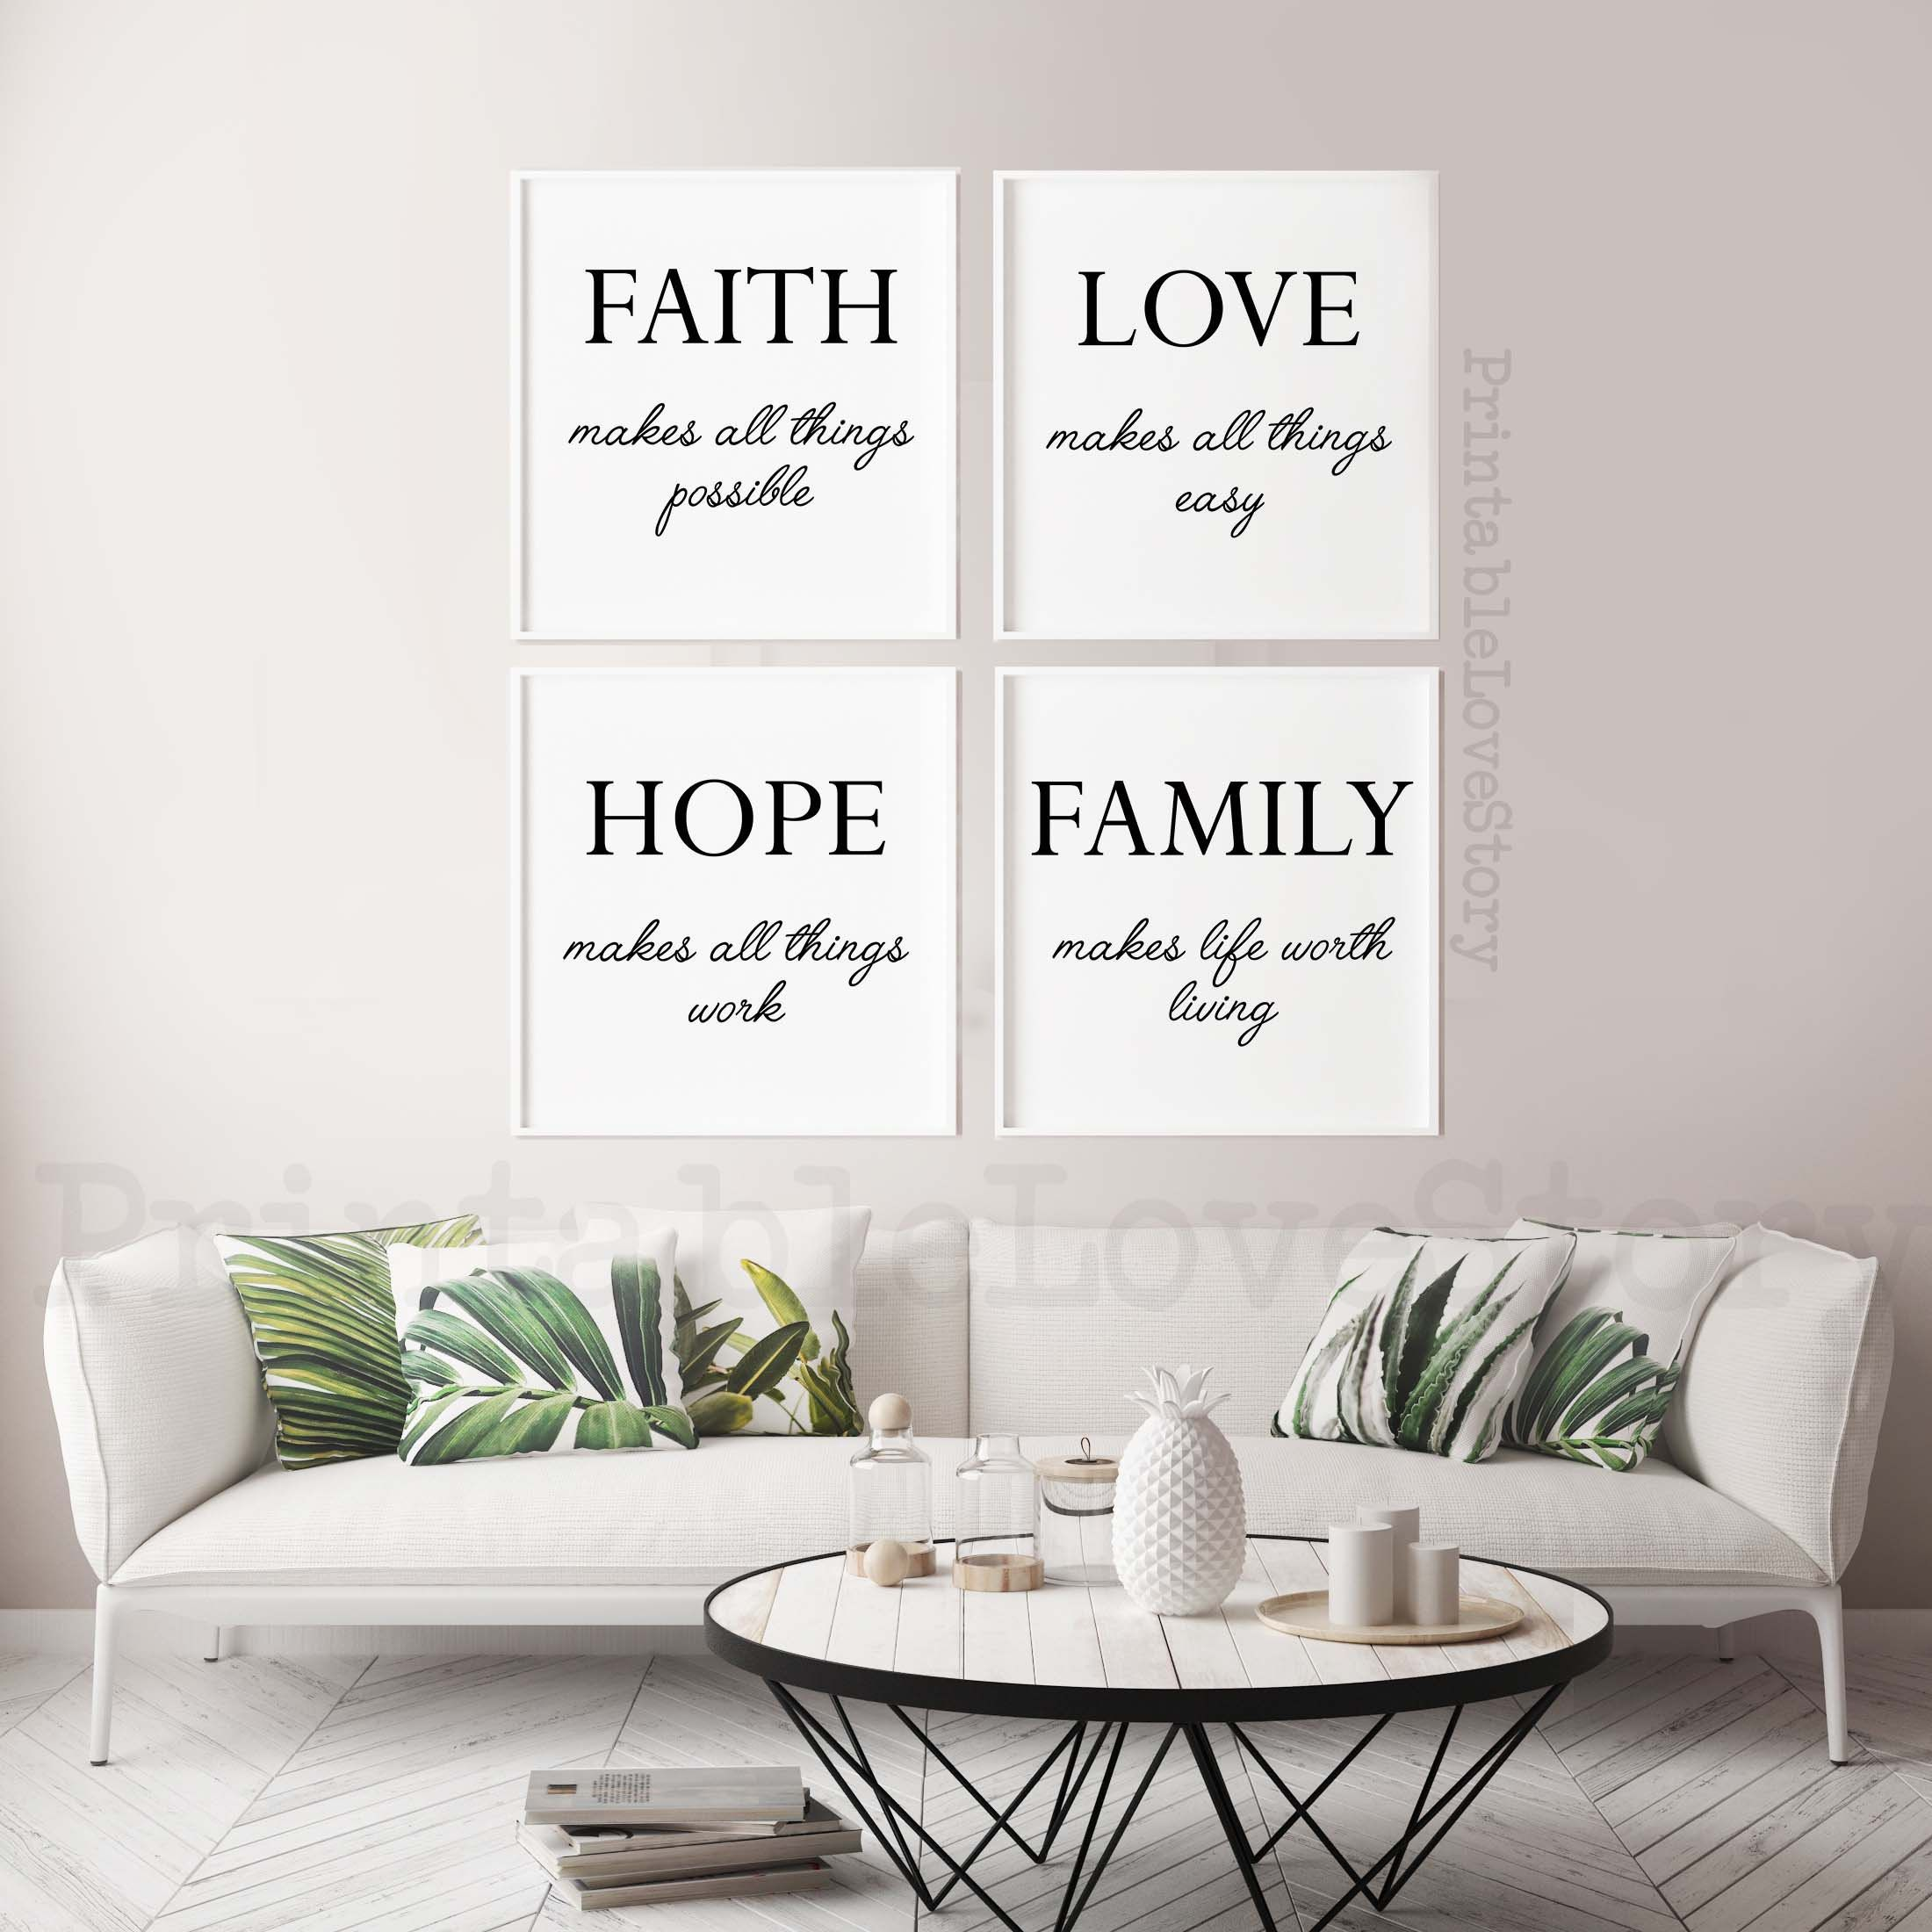 Family Signsfamily Home Decorfamily Quotesset Of 4 Etsy In 2021 Printable Bedroom Decor Wall Printables Printable Wall Art